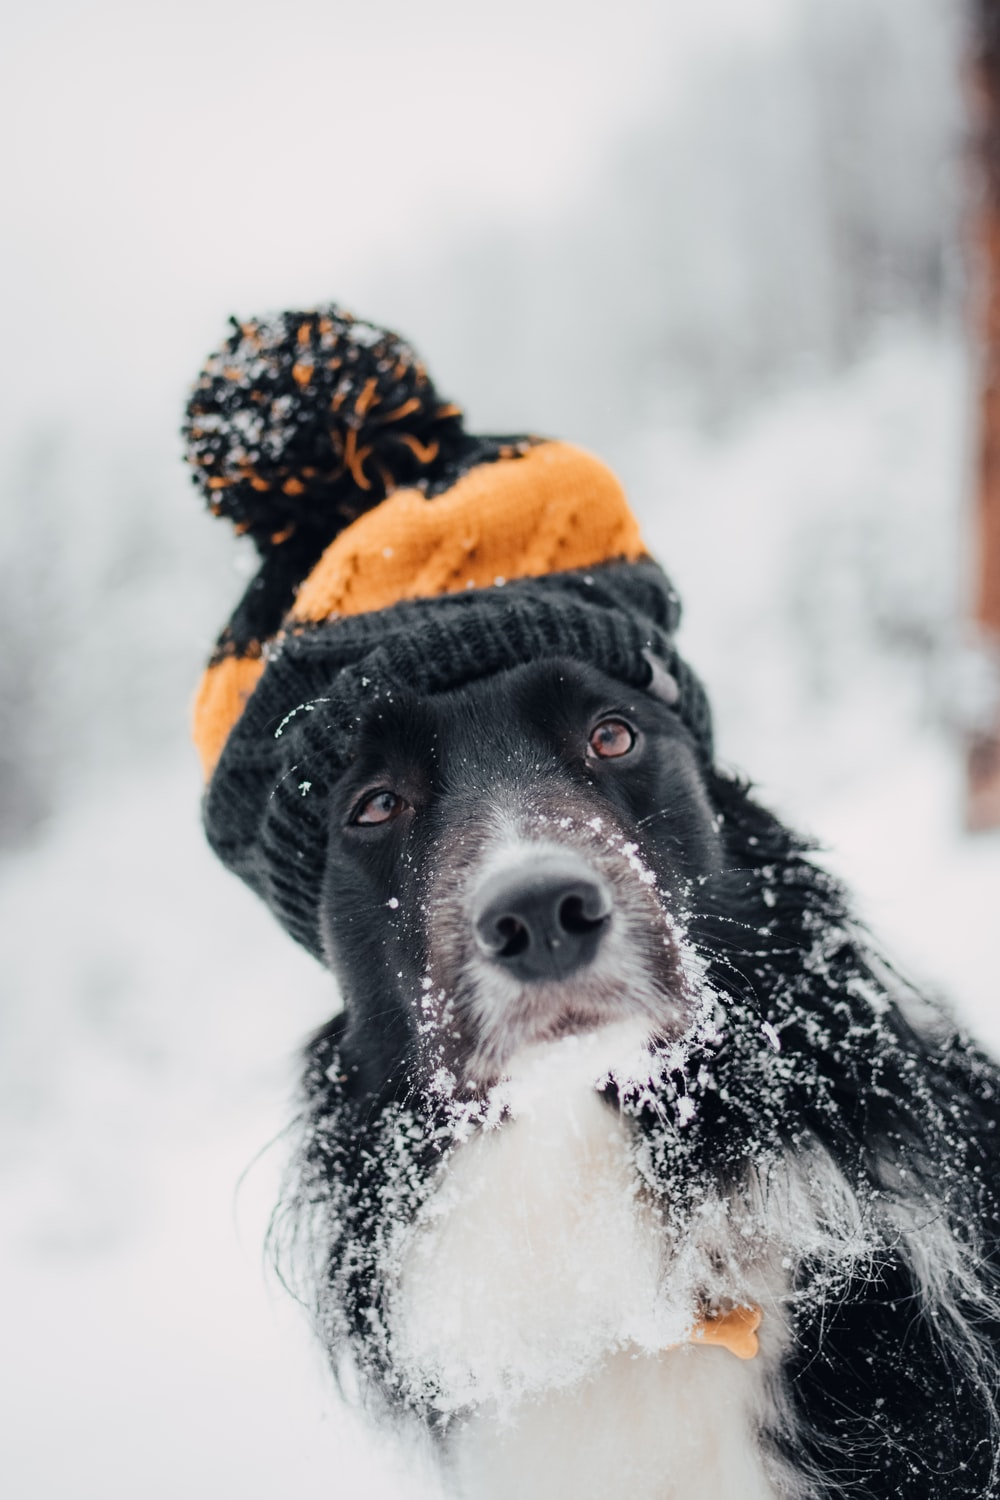 adult short-coated dog sitting snow while wearing orange and black hat